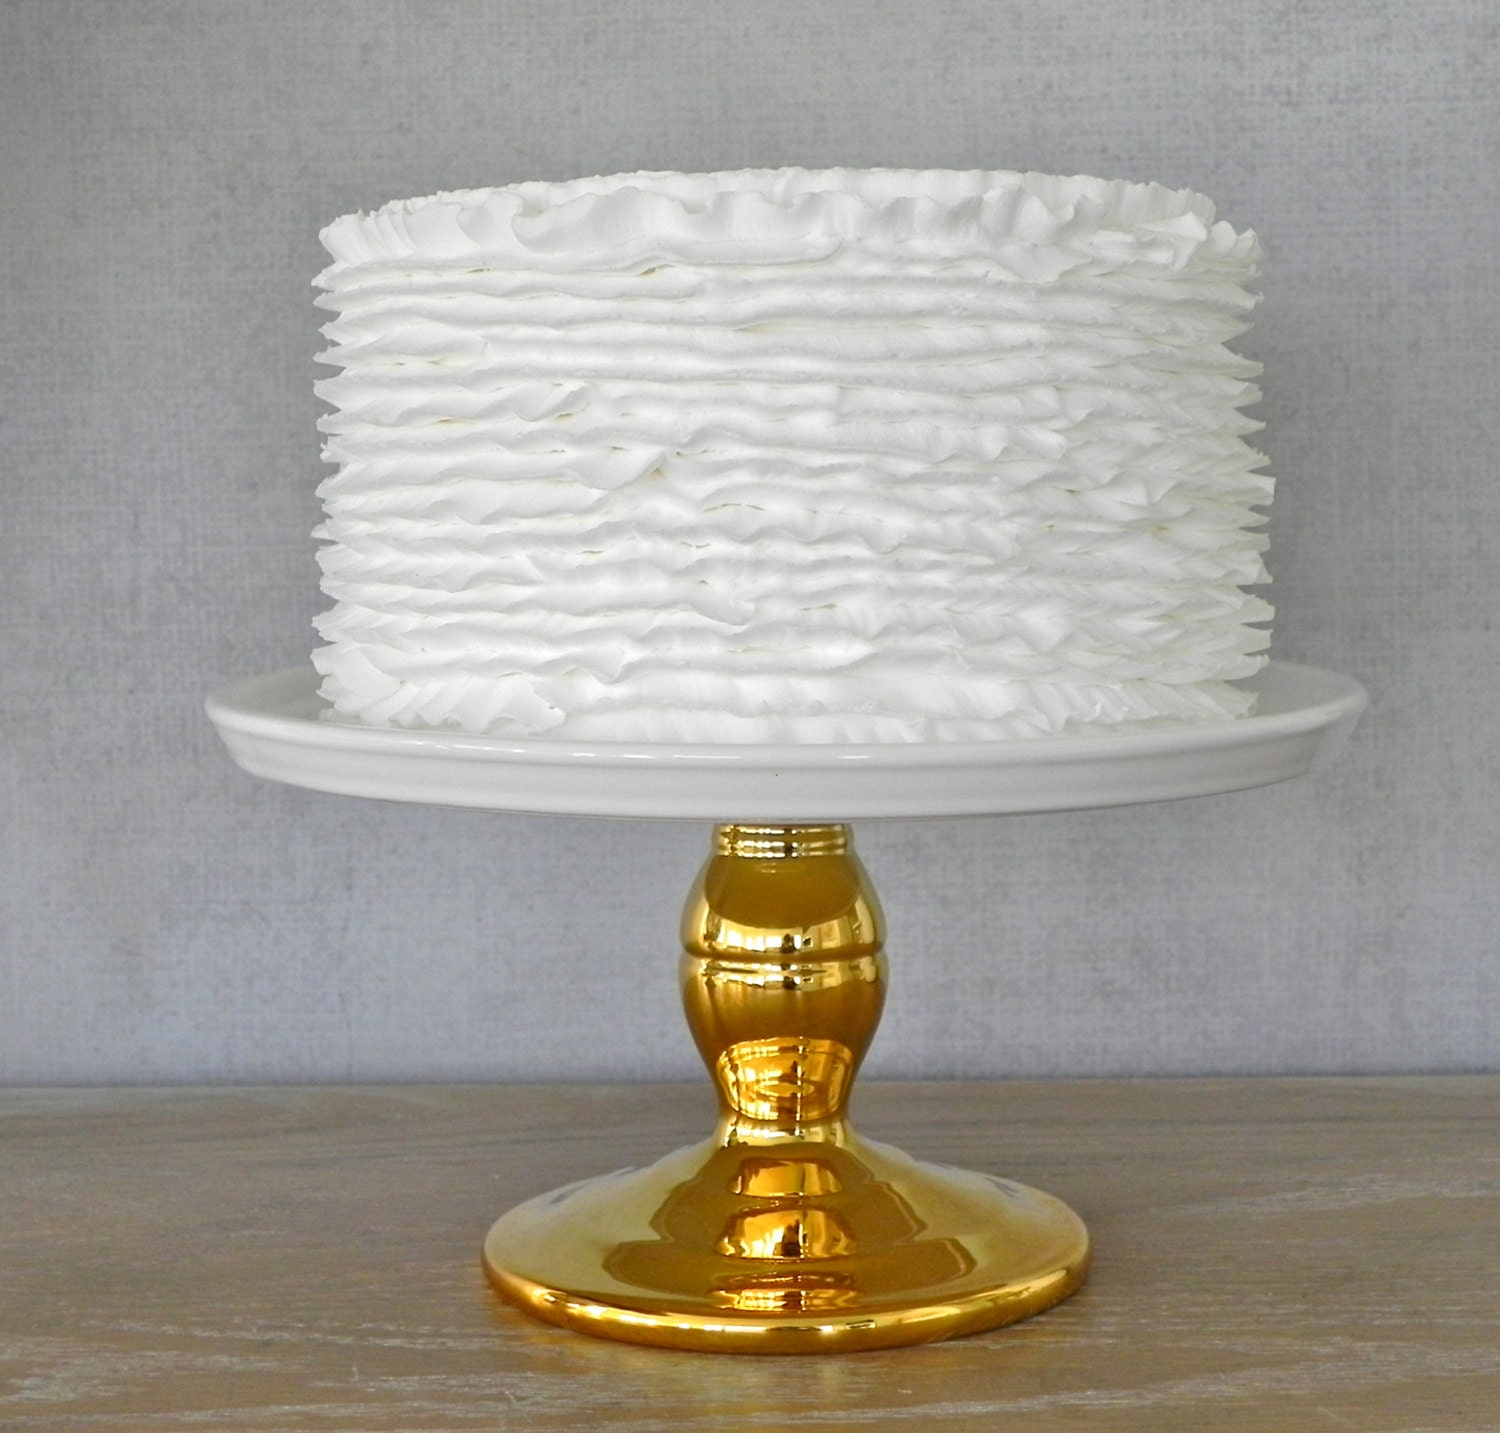 gold cake stand 10 wedding cake stand cupcake stand gold